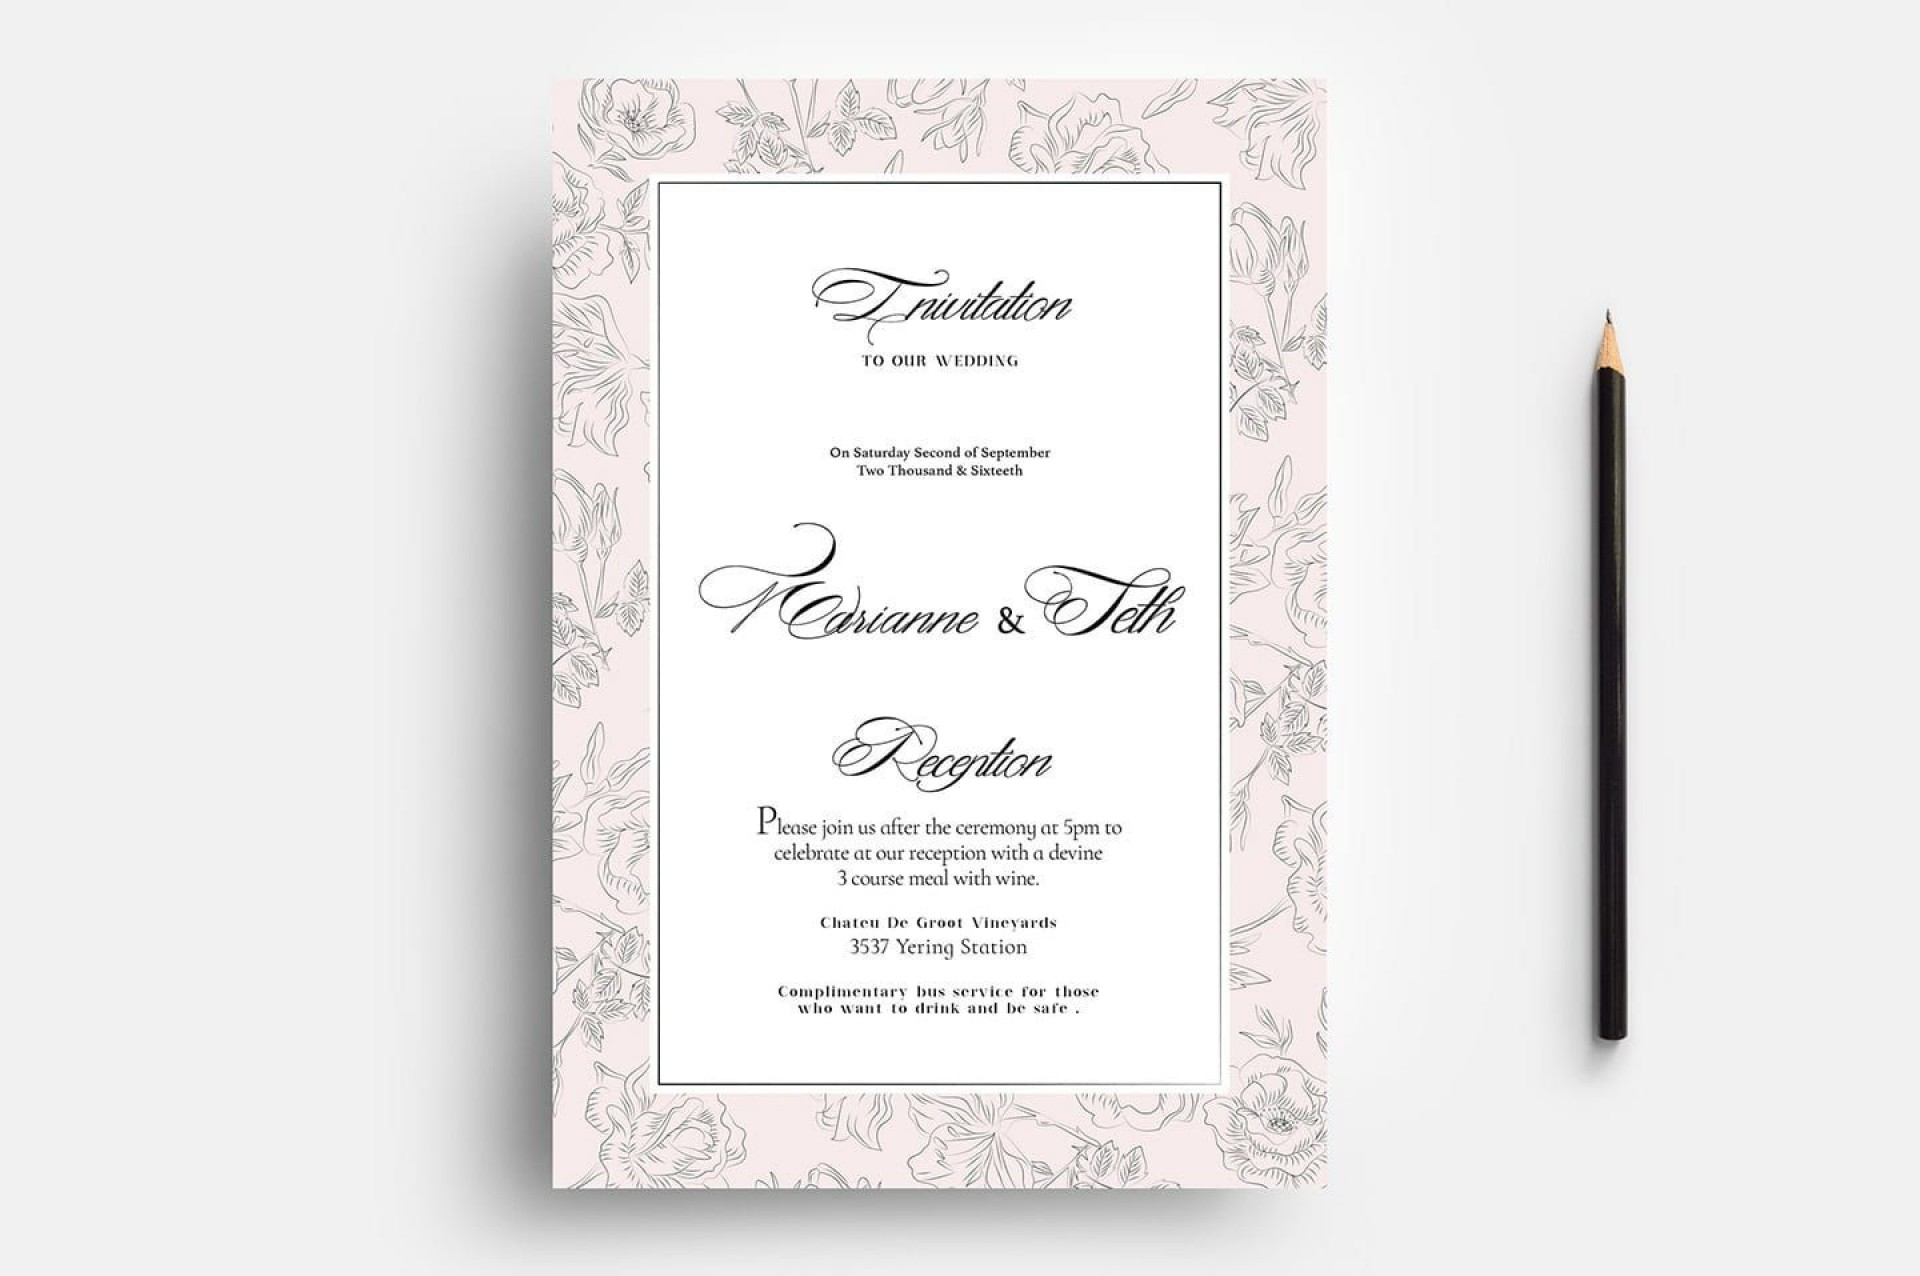 007 Outstanding Wedding Order Of Service Template Free Download Idea  Downloadable That Can Be Printed1920